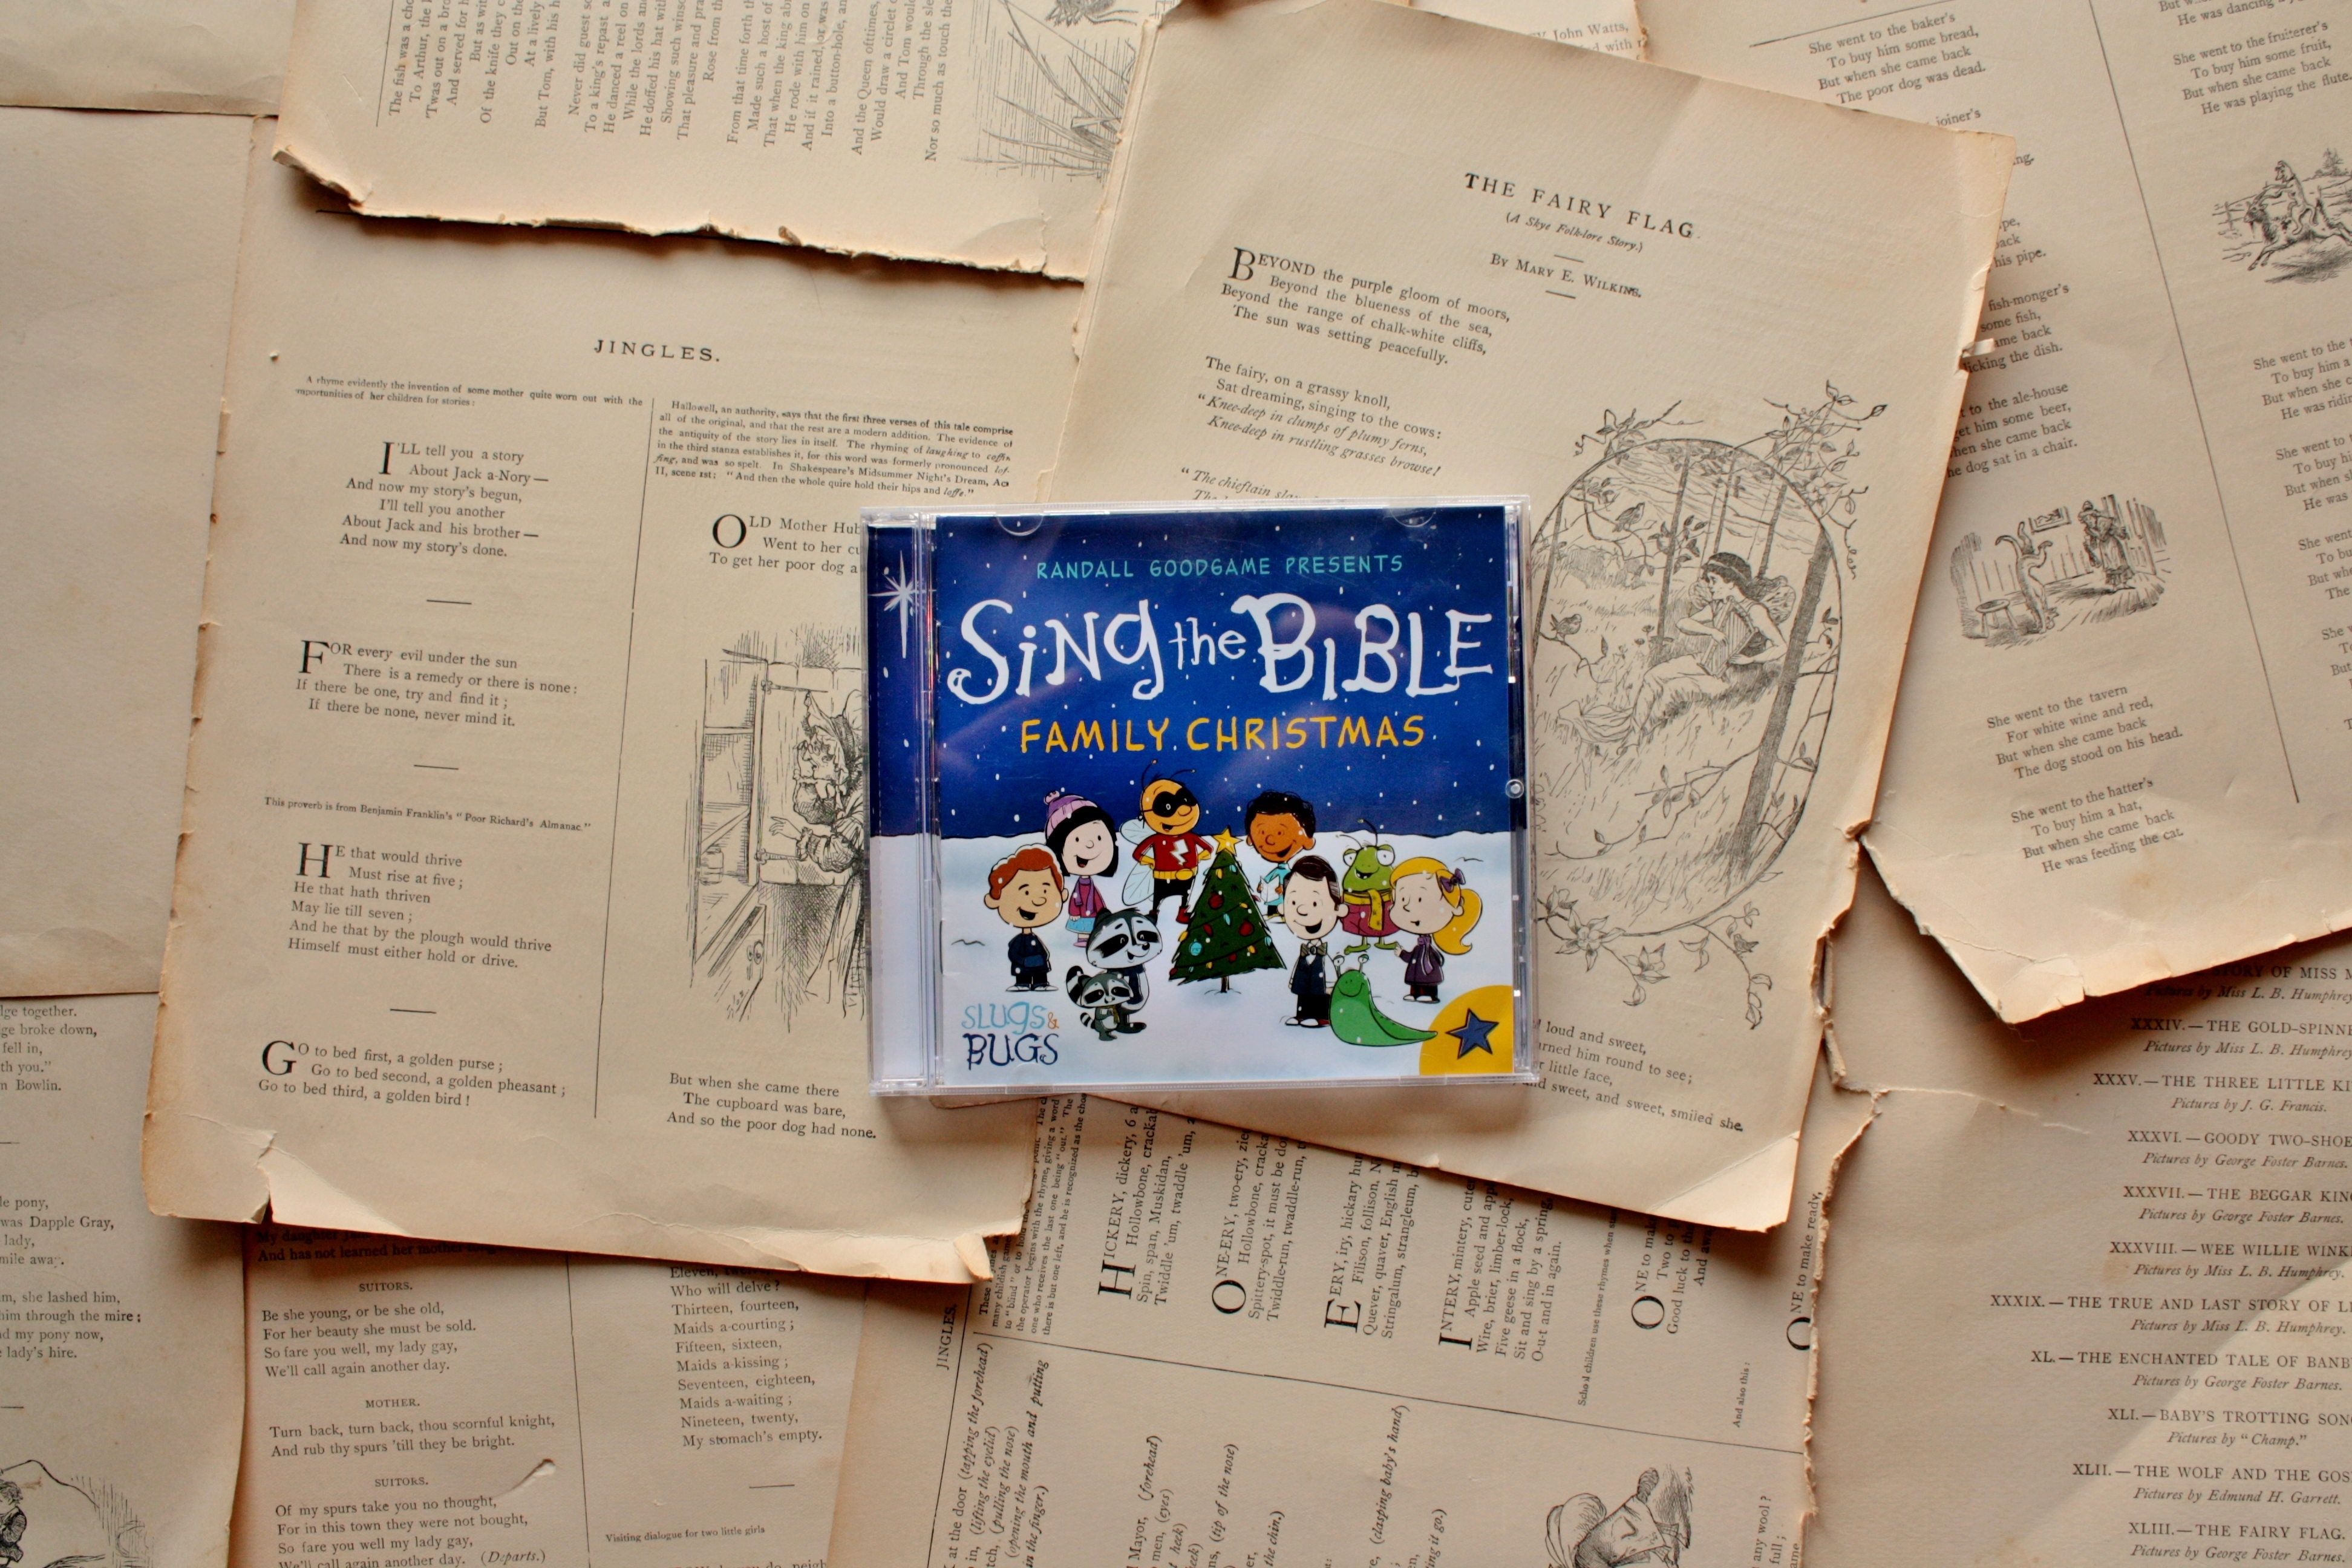 Slugs & Bugs | Sing the Bible: Family Christmas